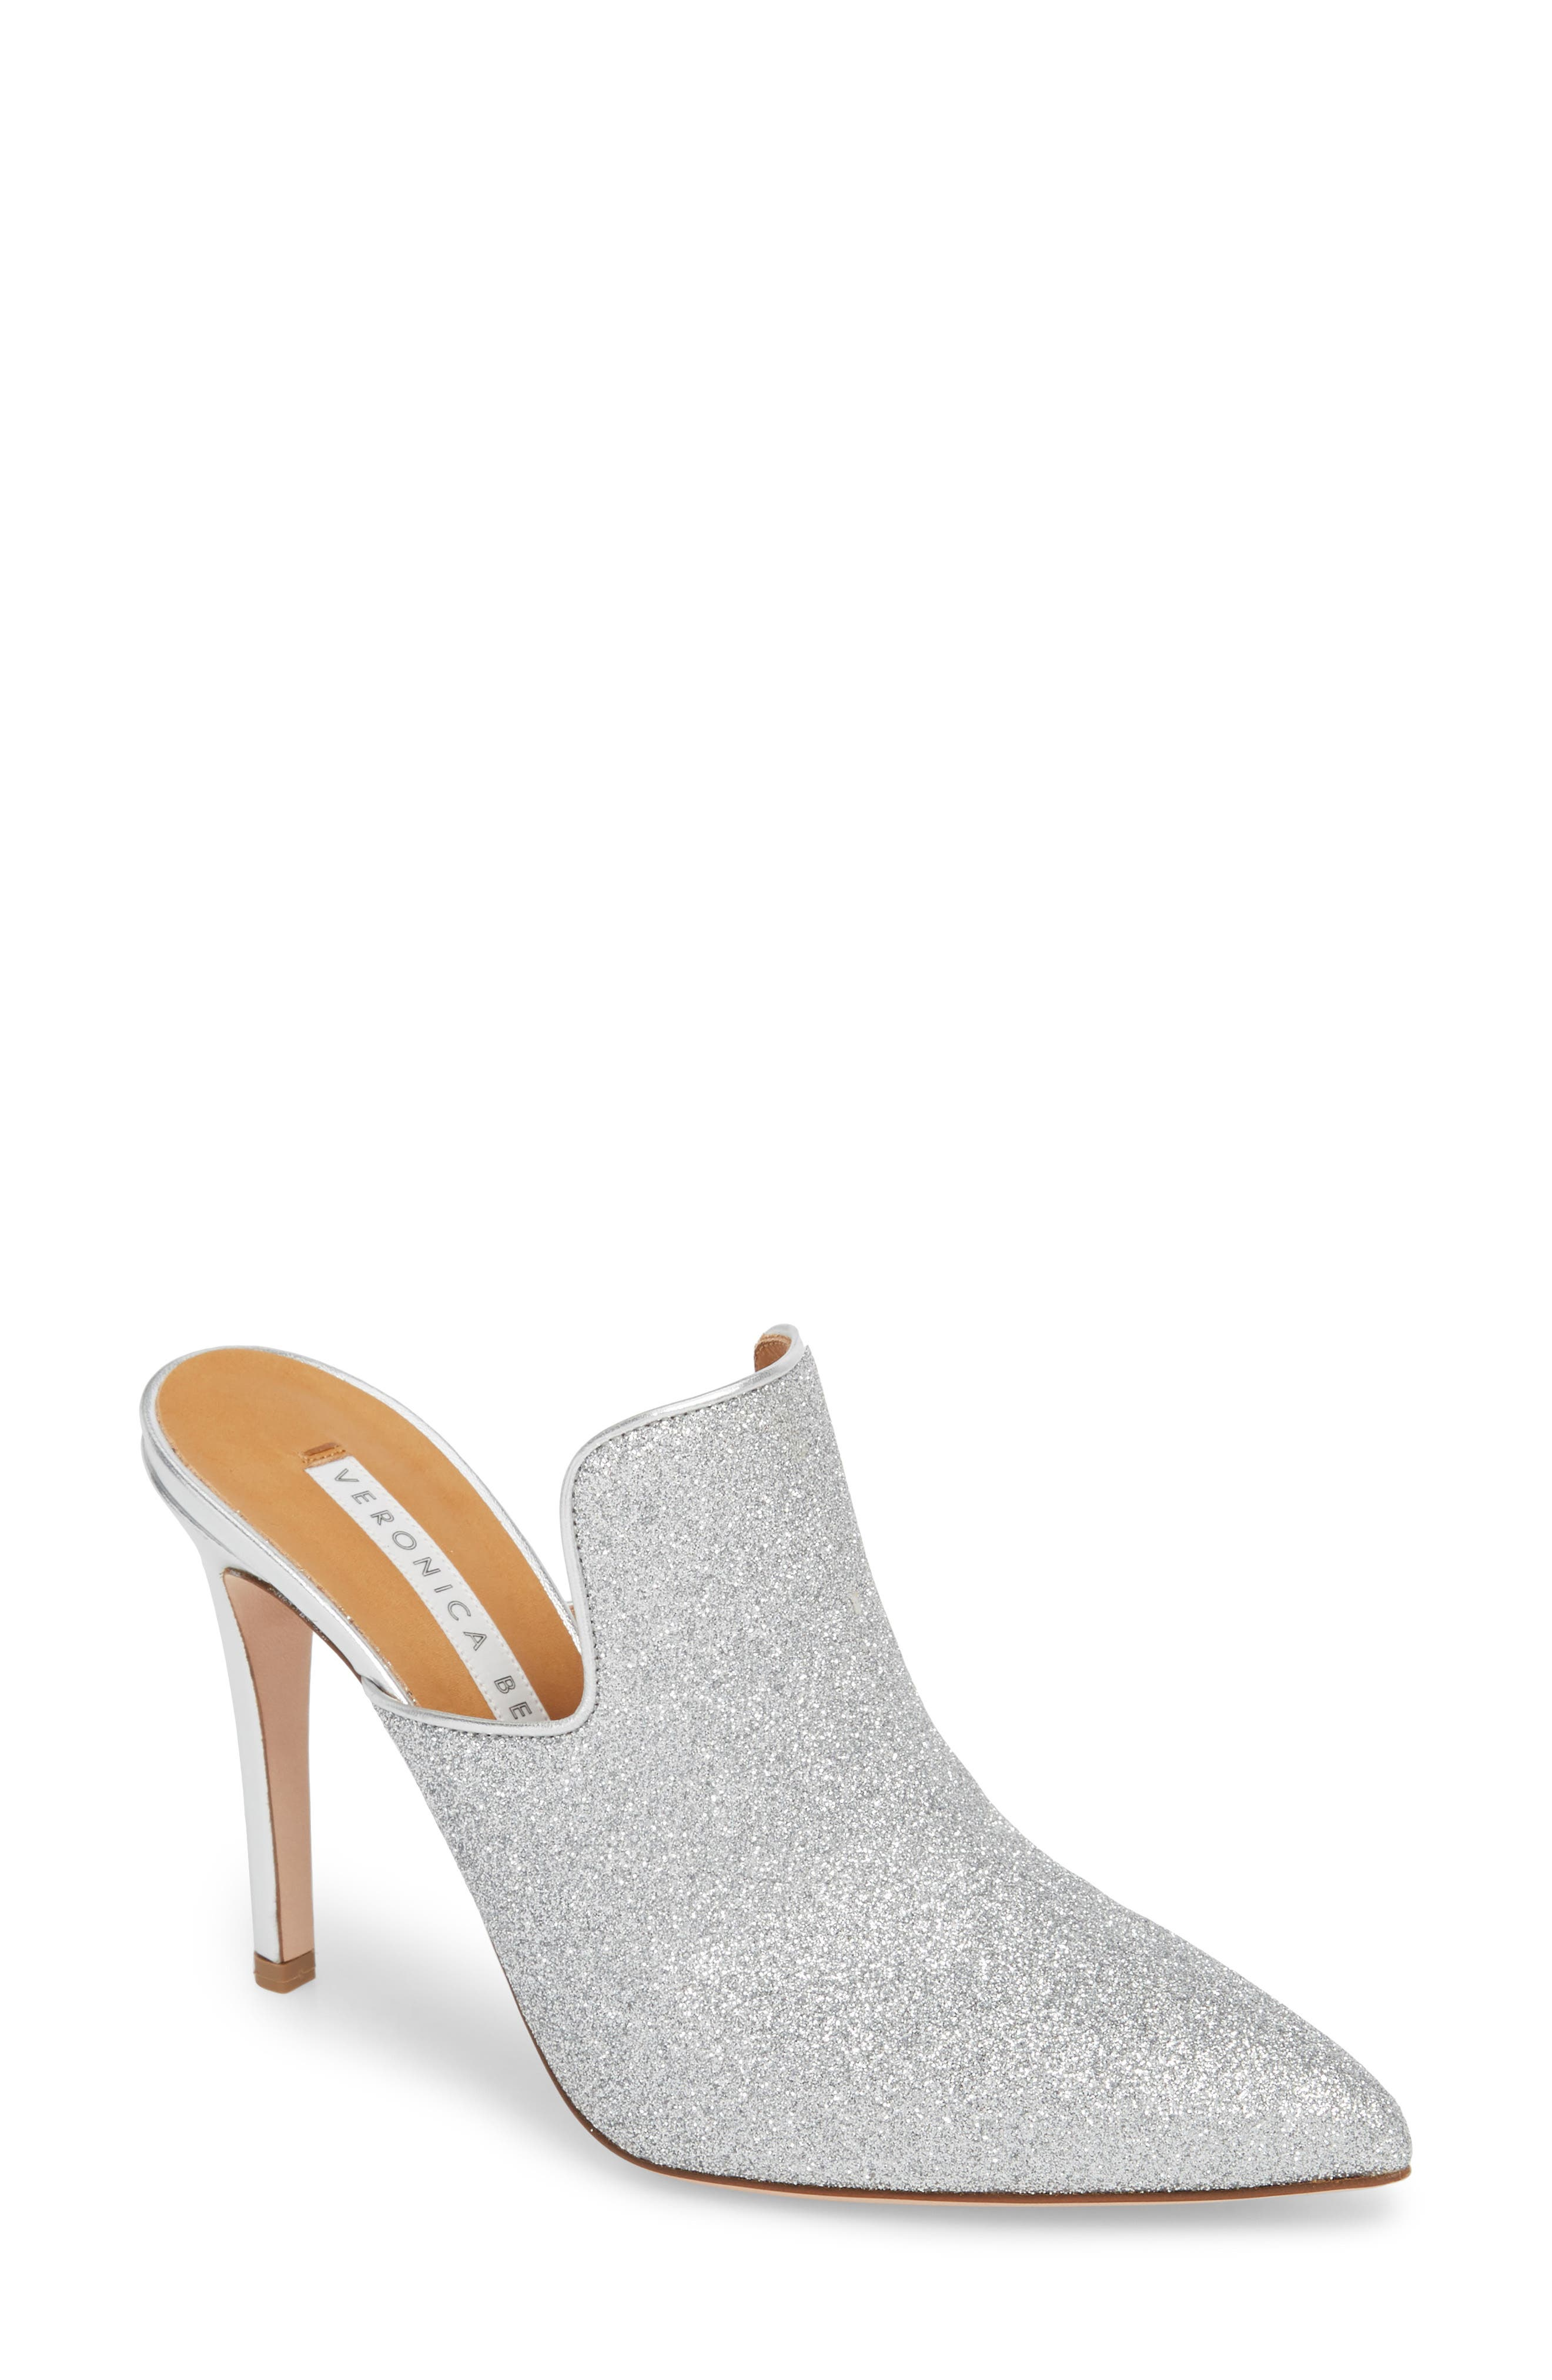 Penn Pointy Toe Mule,                         Main,                         color, Silver